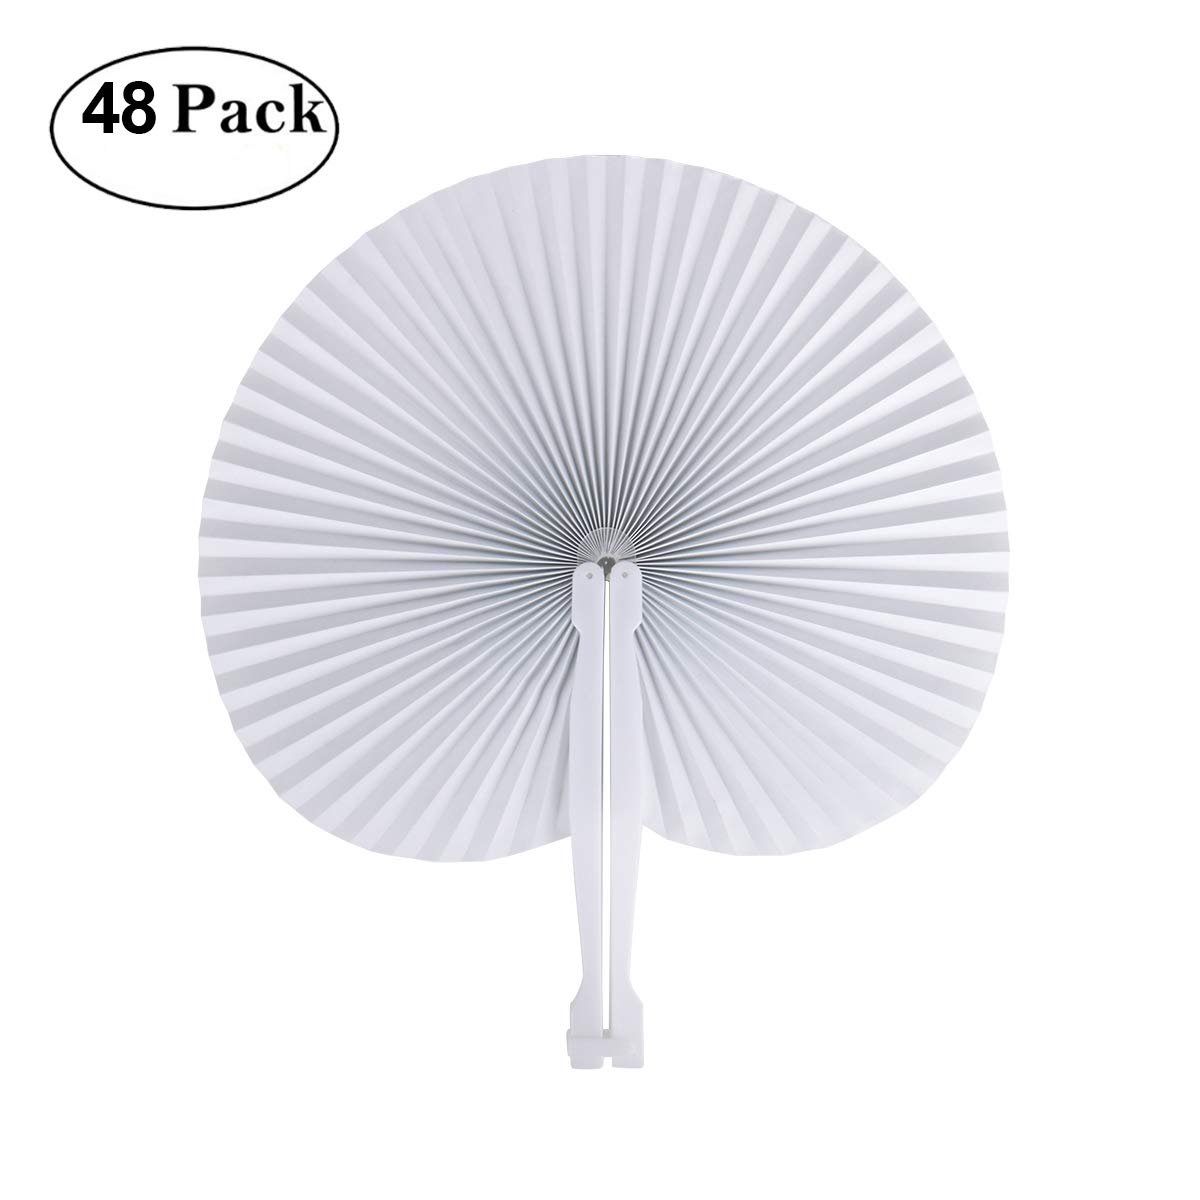 Cusfull 48 Pack White Folding Paper Fans Handheld Paper Fans for Wedding/Party / Party Favours (Round Shape)